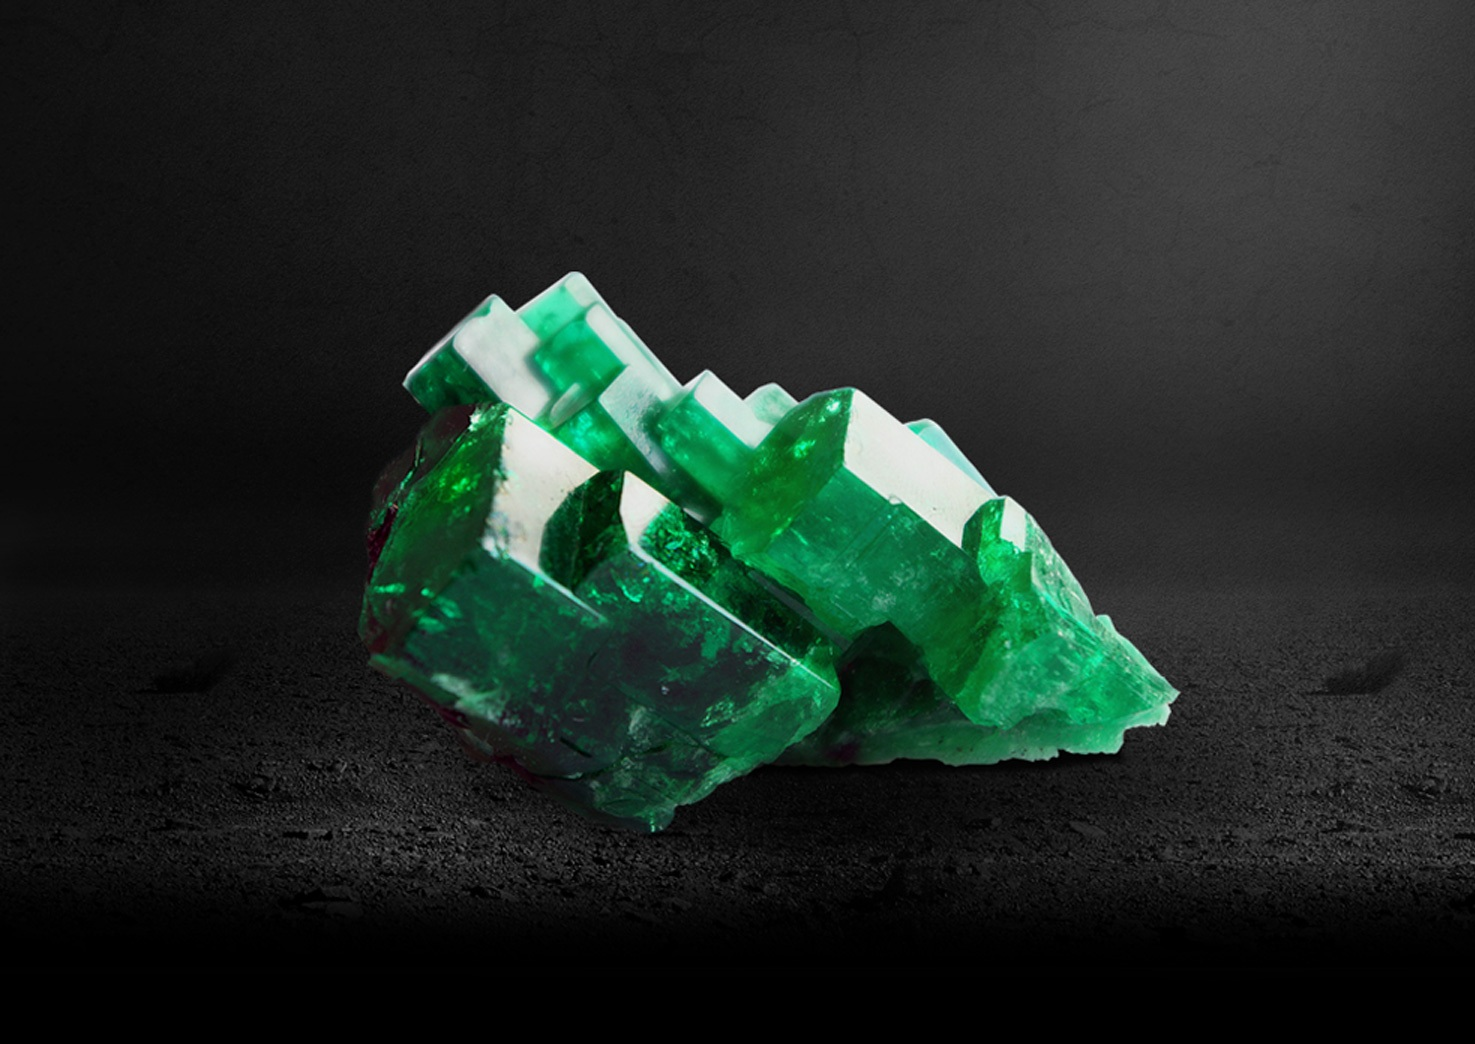 The Rough - Originally emeralds were adorned in their rough, natural state. However over time, master cutters developed the ability to polish the surface of these gems, resulting in a variety of forms that correspond to the stones original shape.